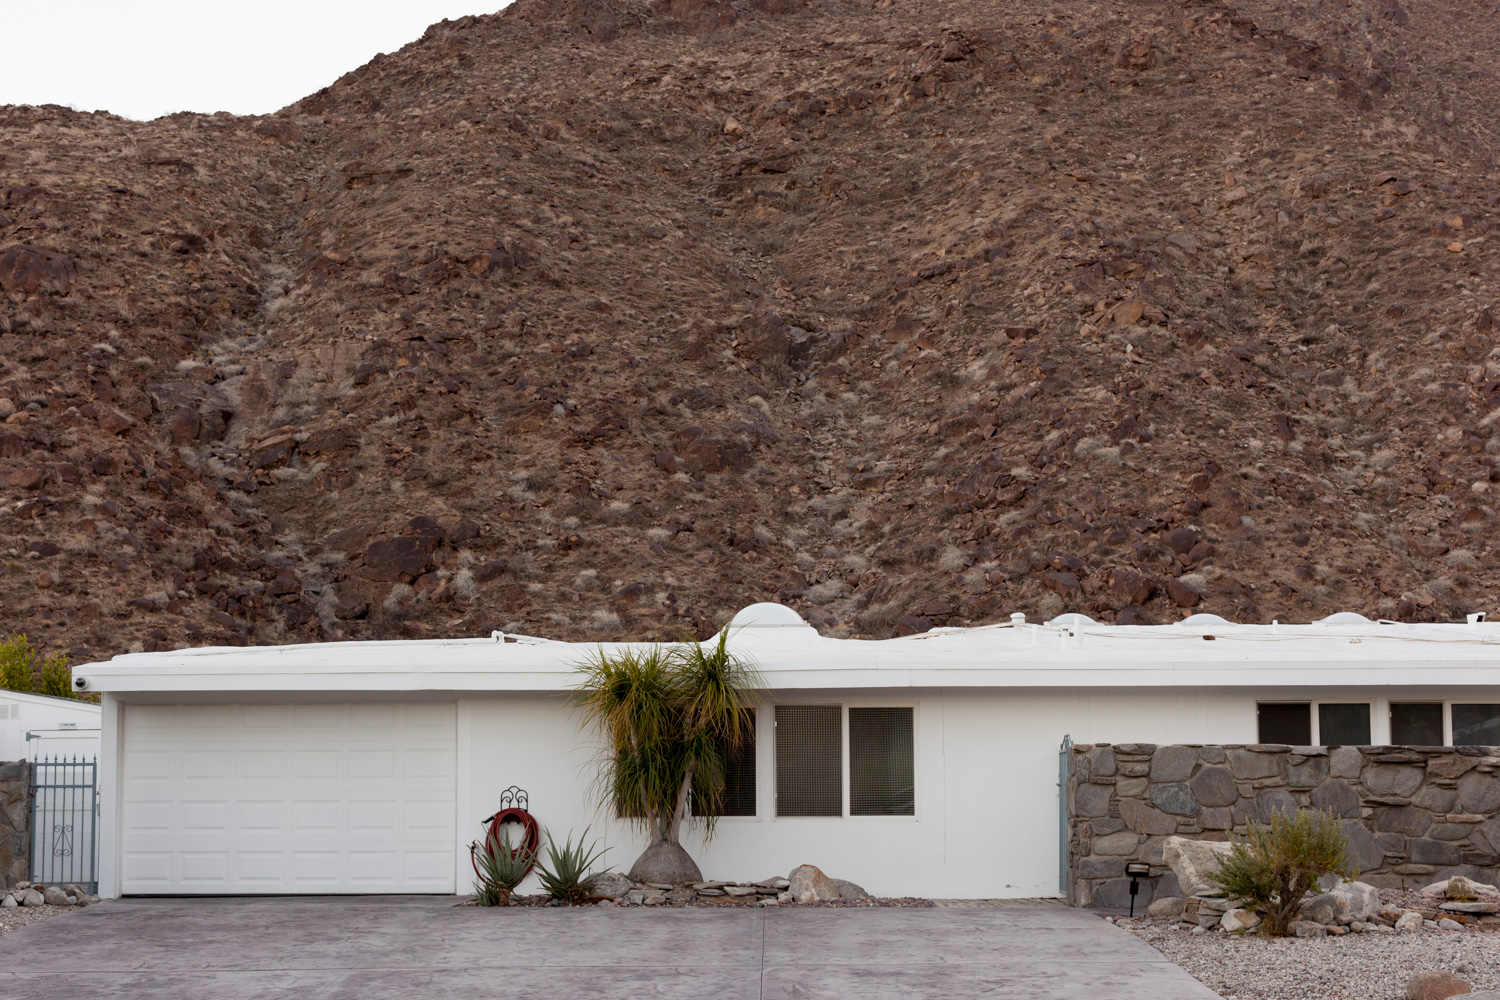 West Crescent Drive, Palm Springs.